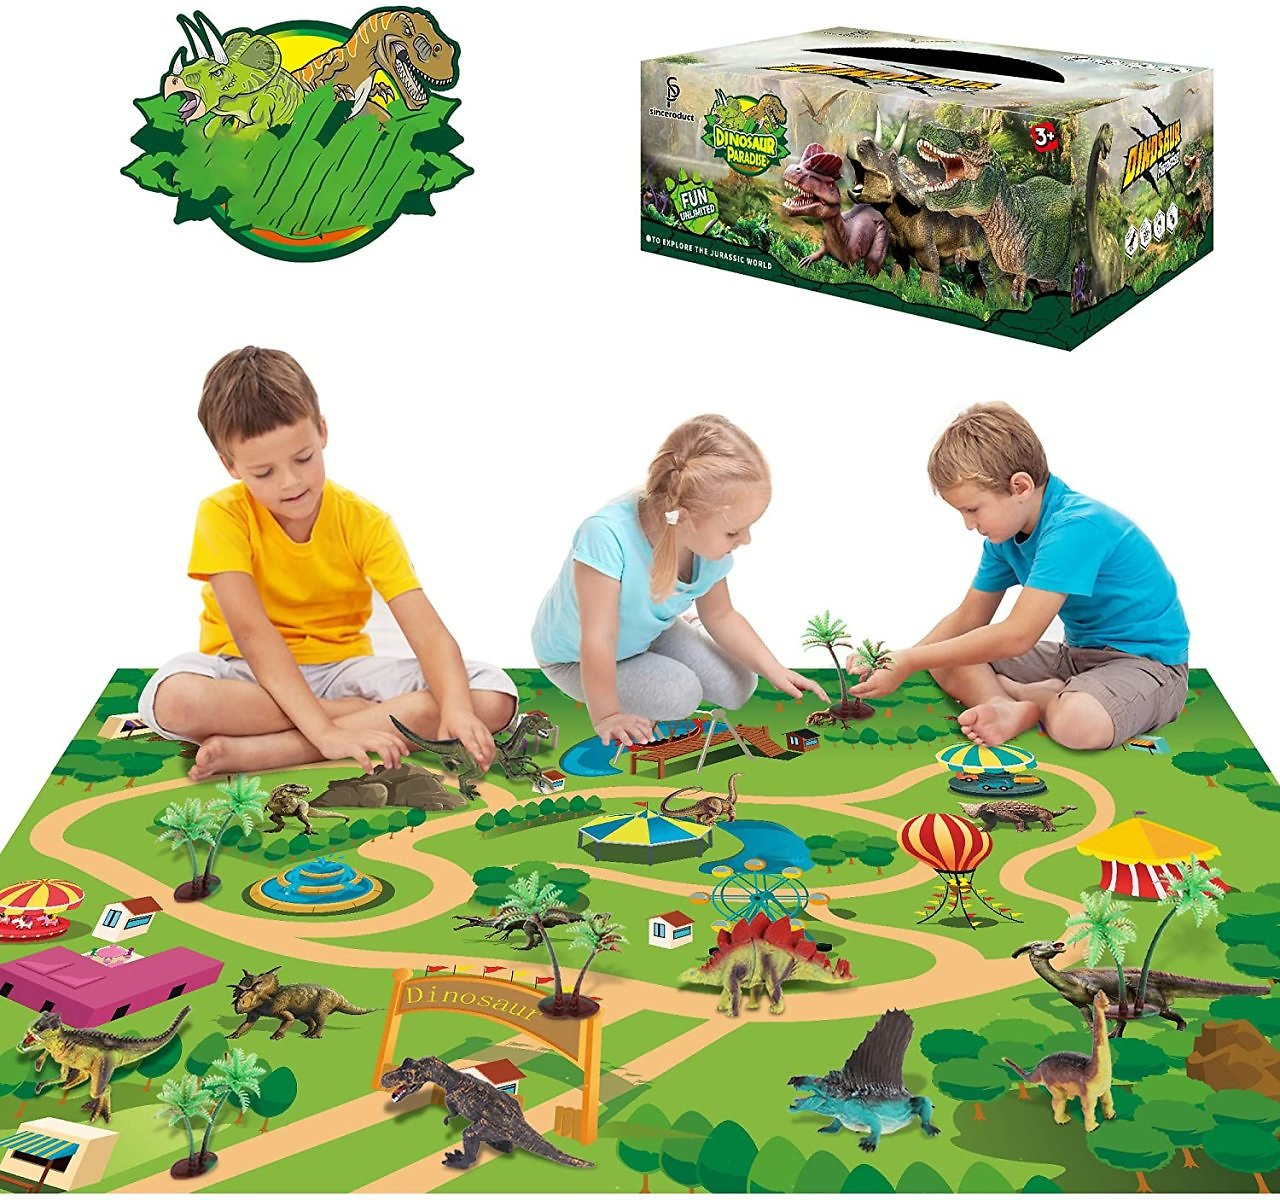 Sinceroduct Dinosaur Toys Activity Play Mat 47.2 X 31.5 in - 13 Realistic Dinosaur Figures Playset to Create a Dino World